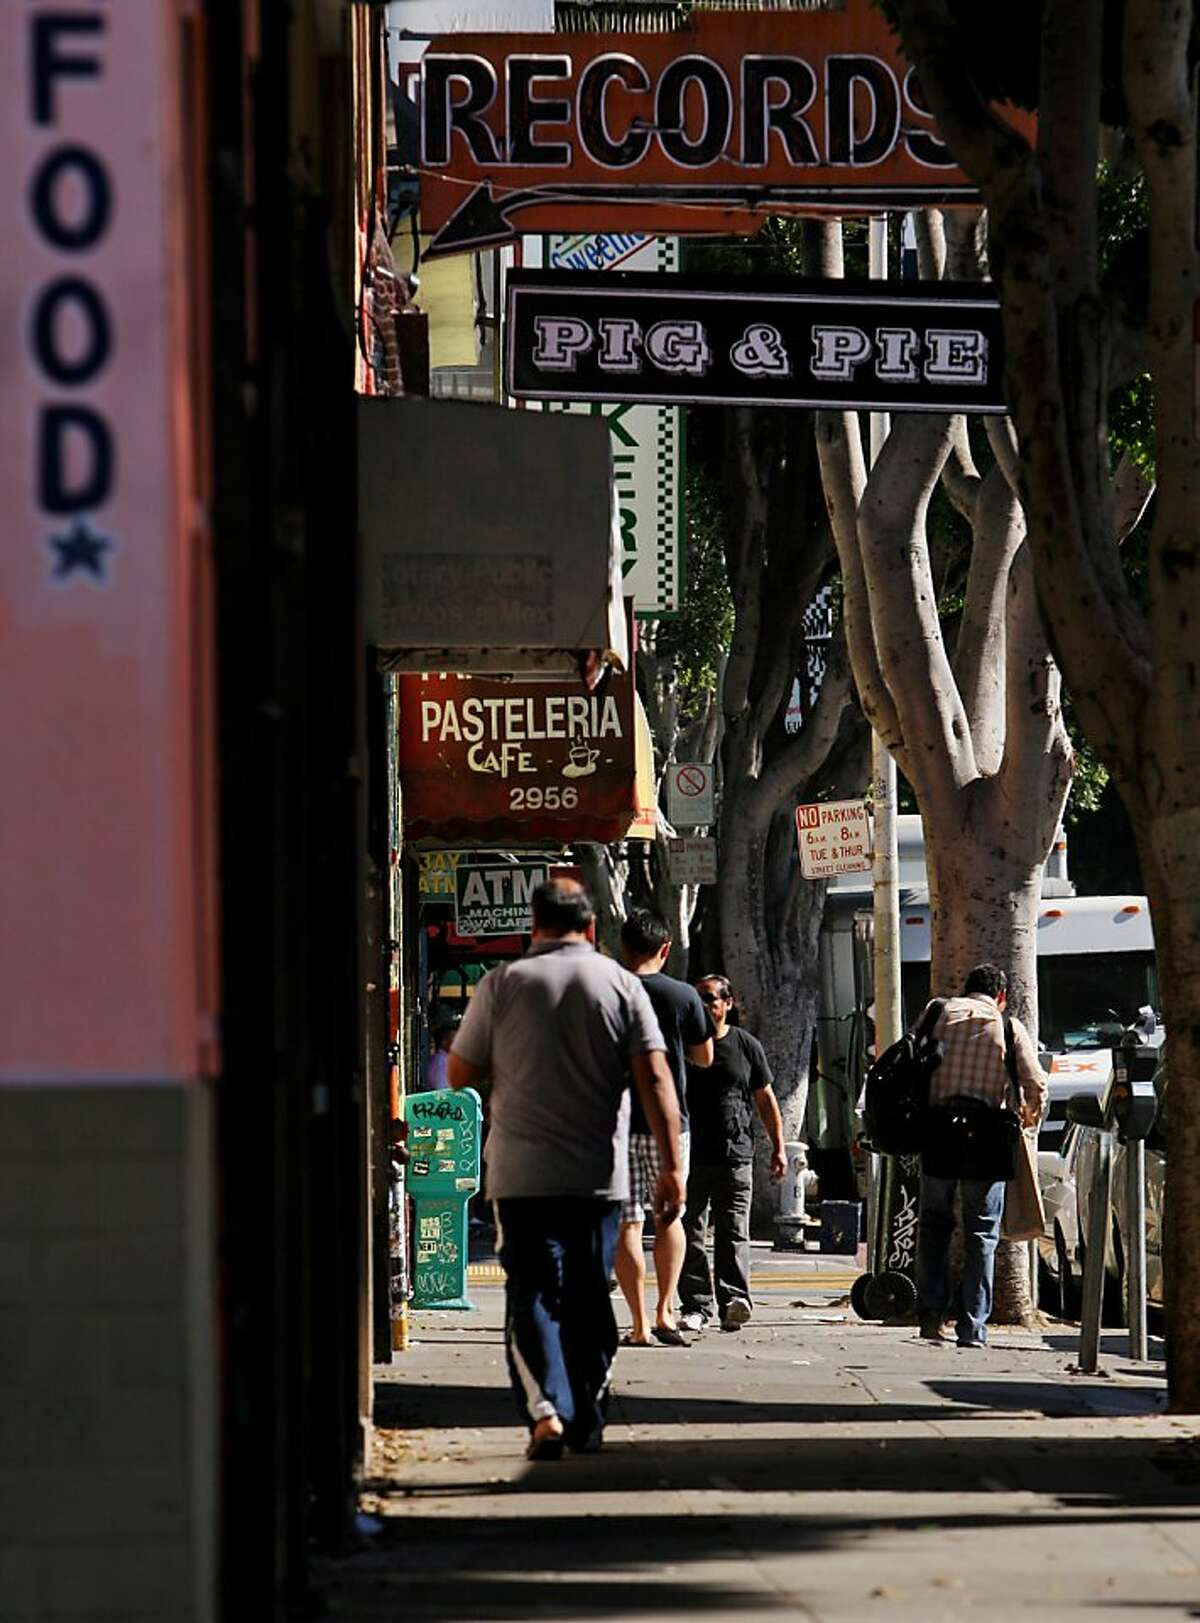 Pedestrians are seen beneath business signs as they walk on 24th st in San Francisco, Calif. on Friday, Oct. 18, 2013.